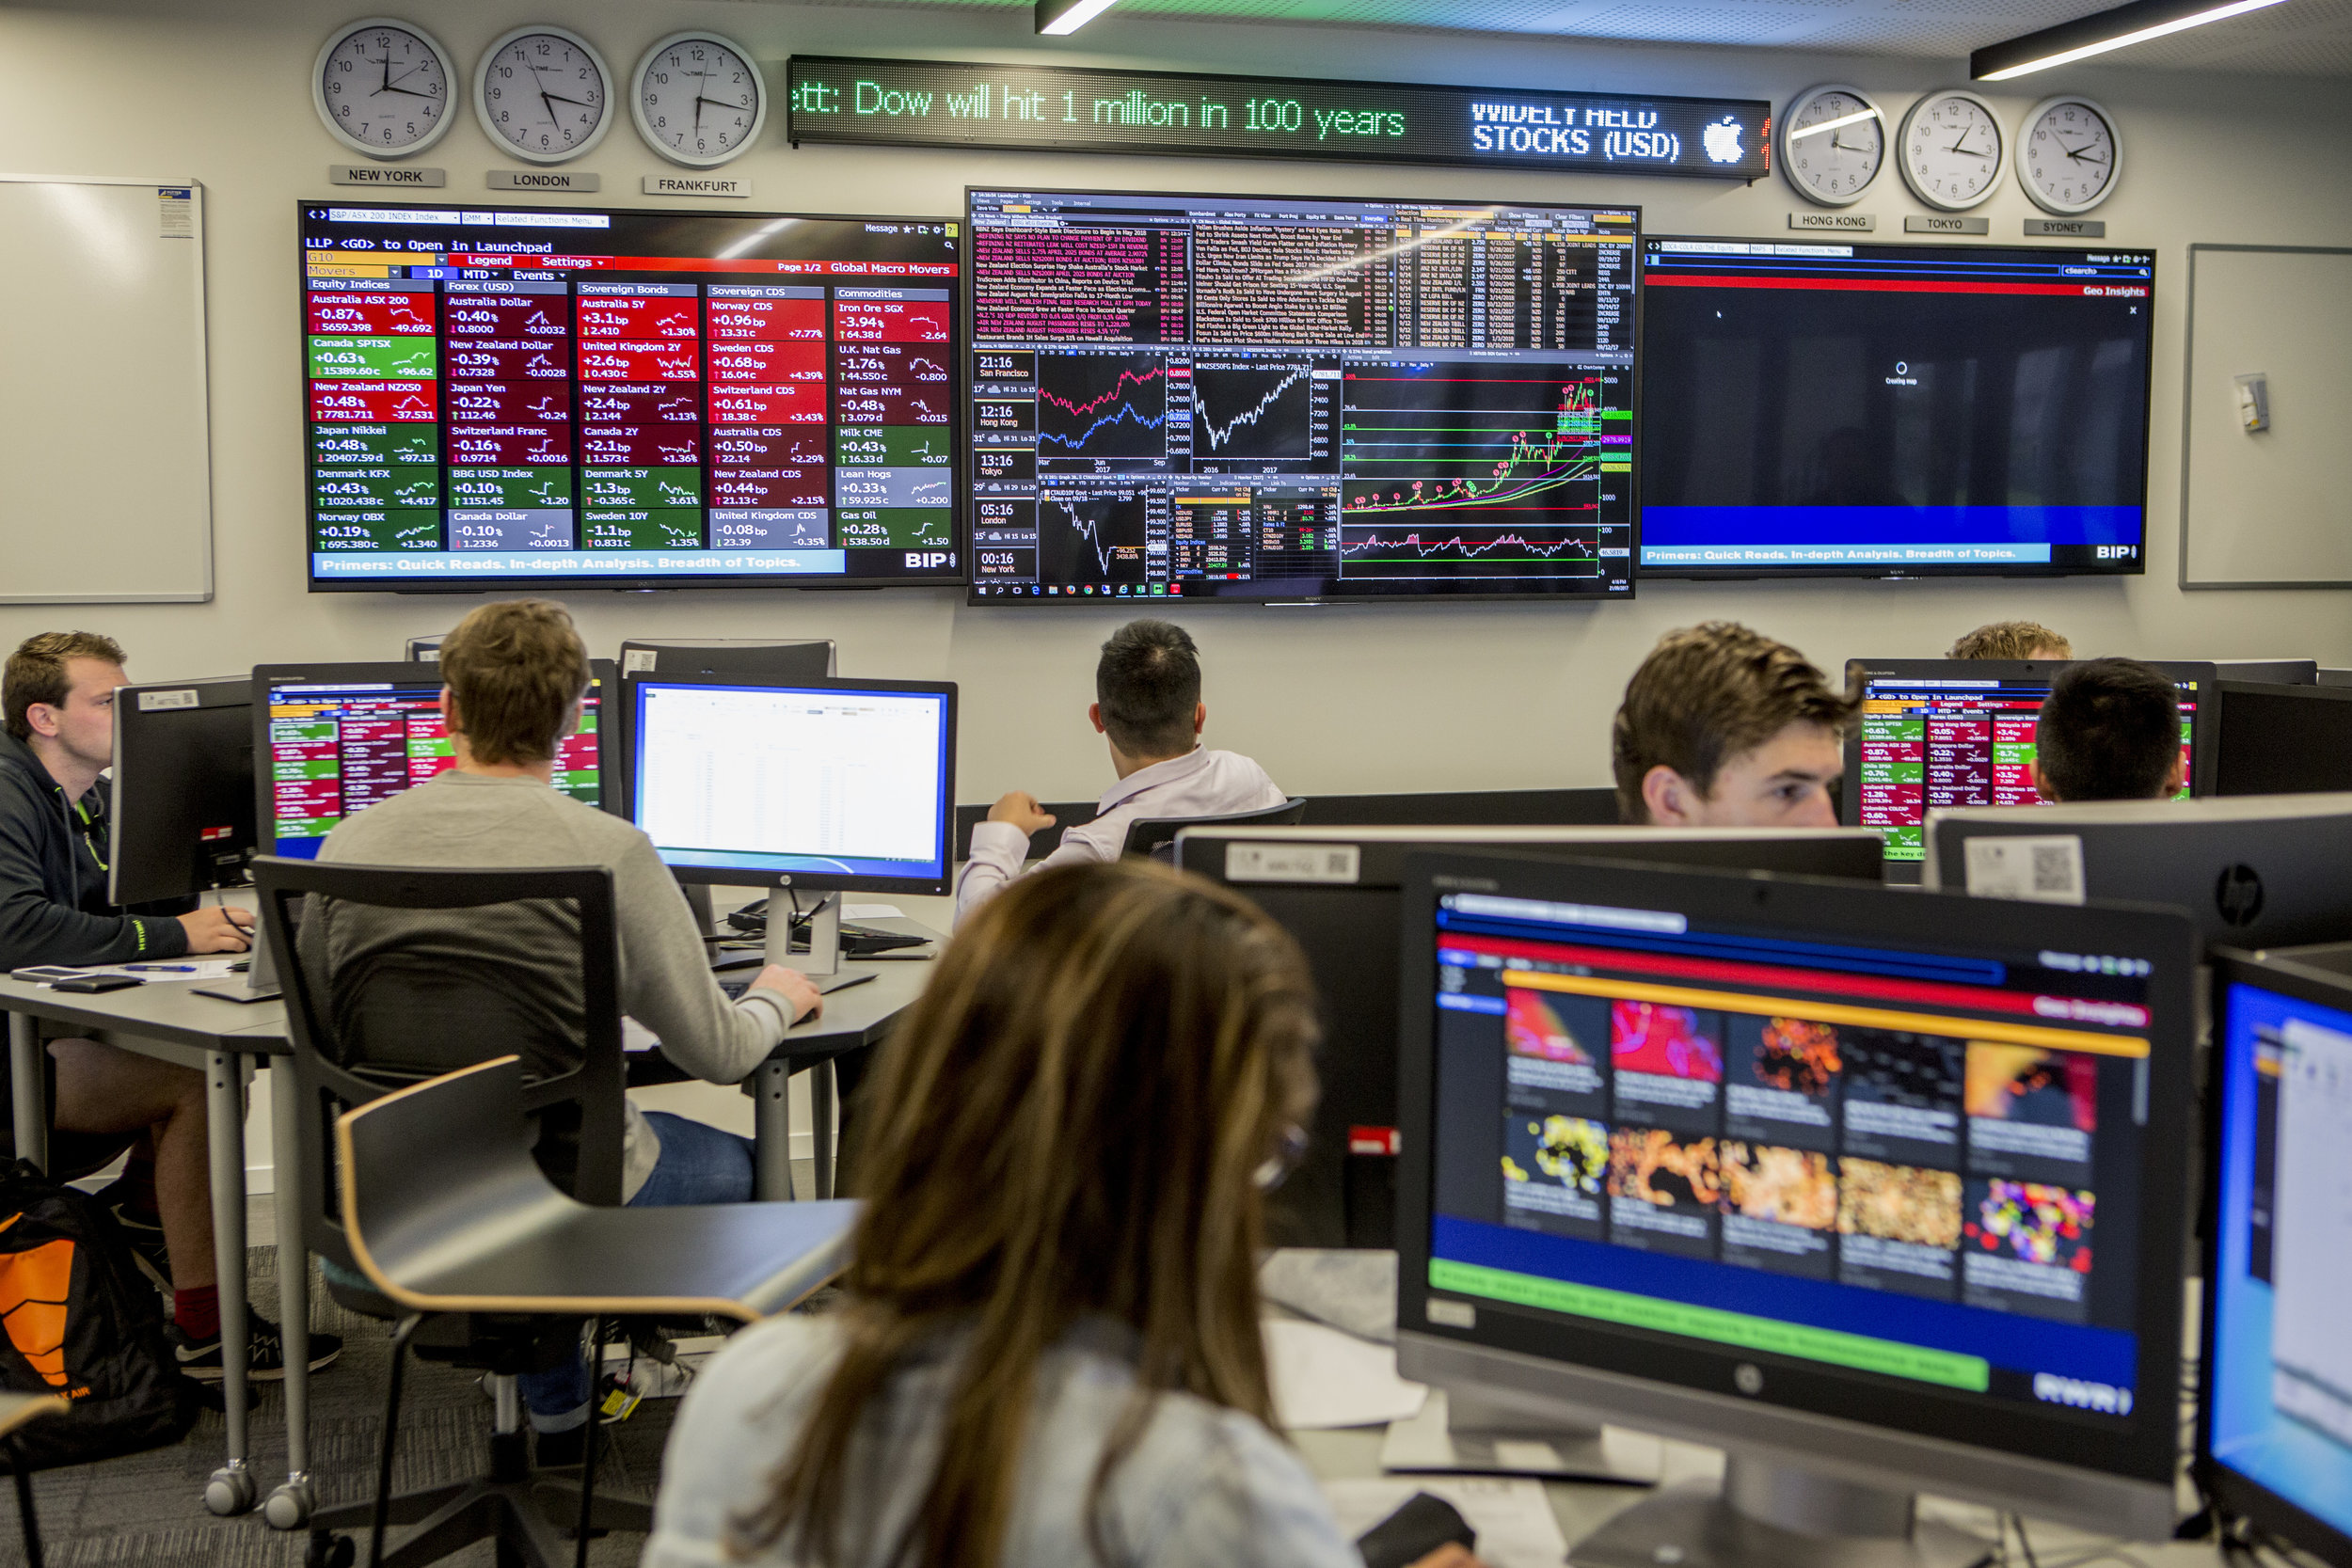 Photo info: The UC Business School Trading Room simulates a real-world financial trading environment, providing business and finance students with experiential learning and skills in fund management.  Photo credit: University of Canterbury